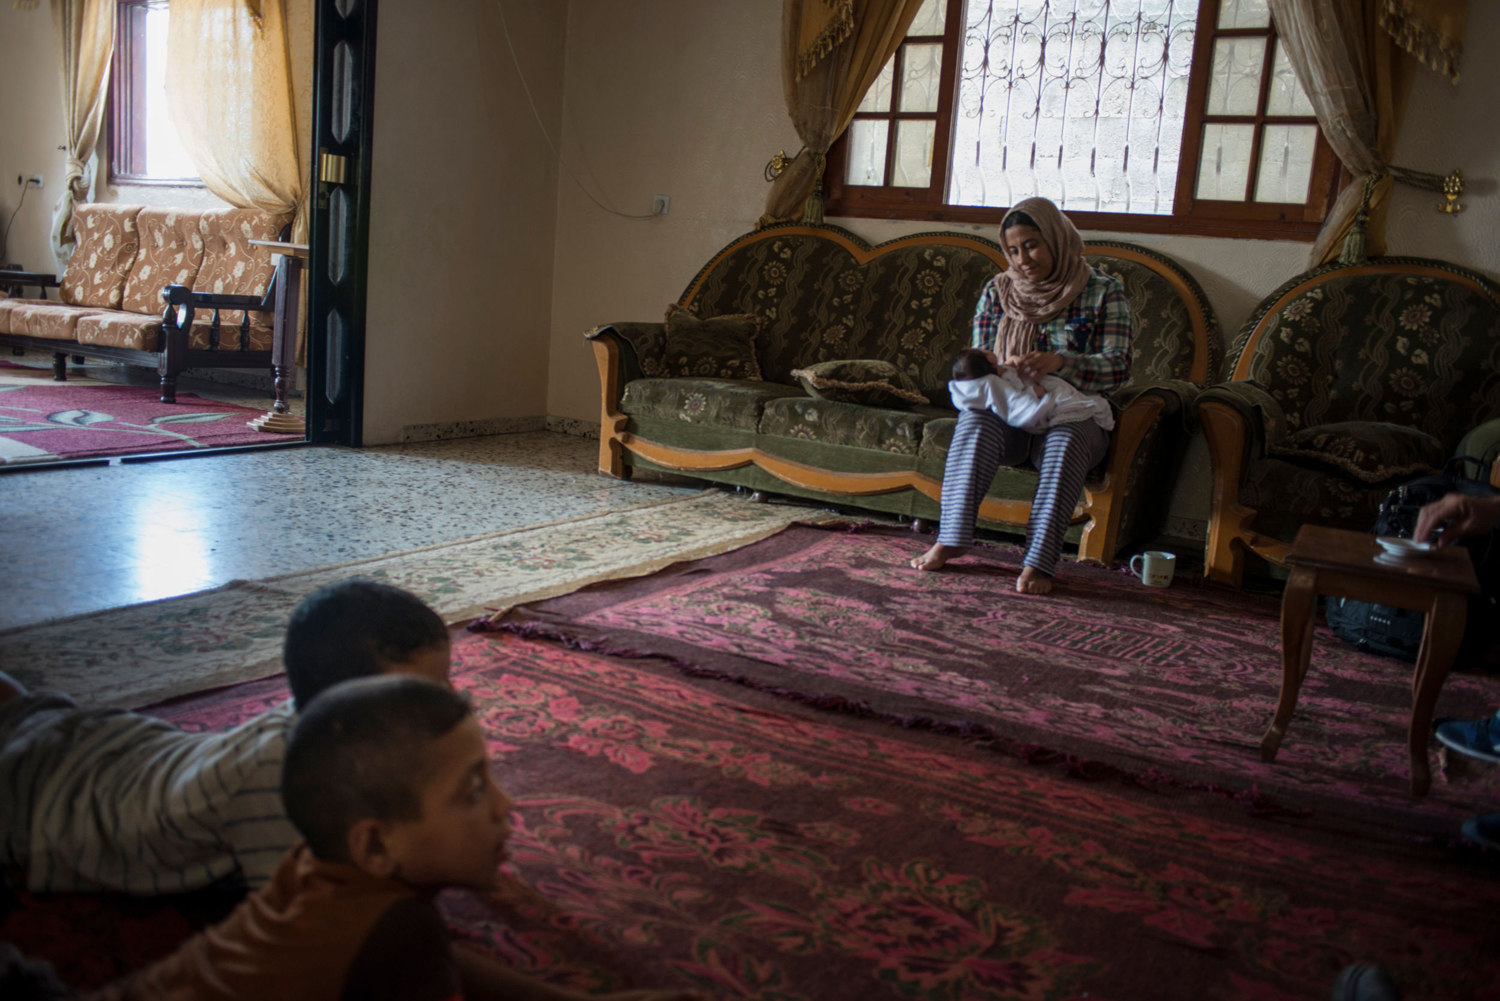 During heavy shelling in the southern city of Rafa, Marwan spends time with her niece, children and extended family who have been evacuated to her house. Three families are now living where one lived previously and there are 60 people in the building.